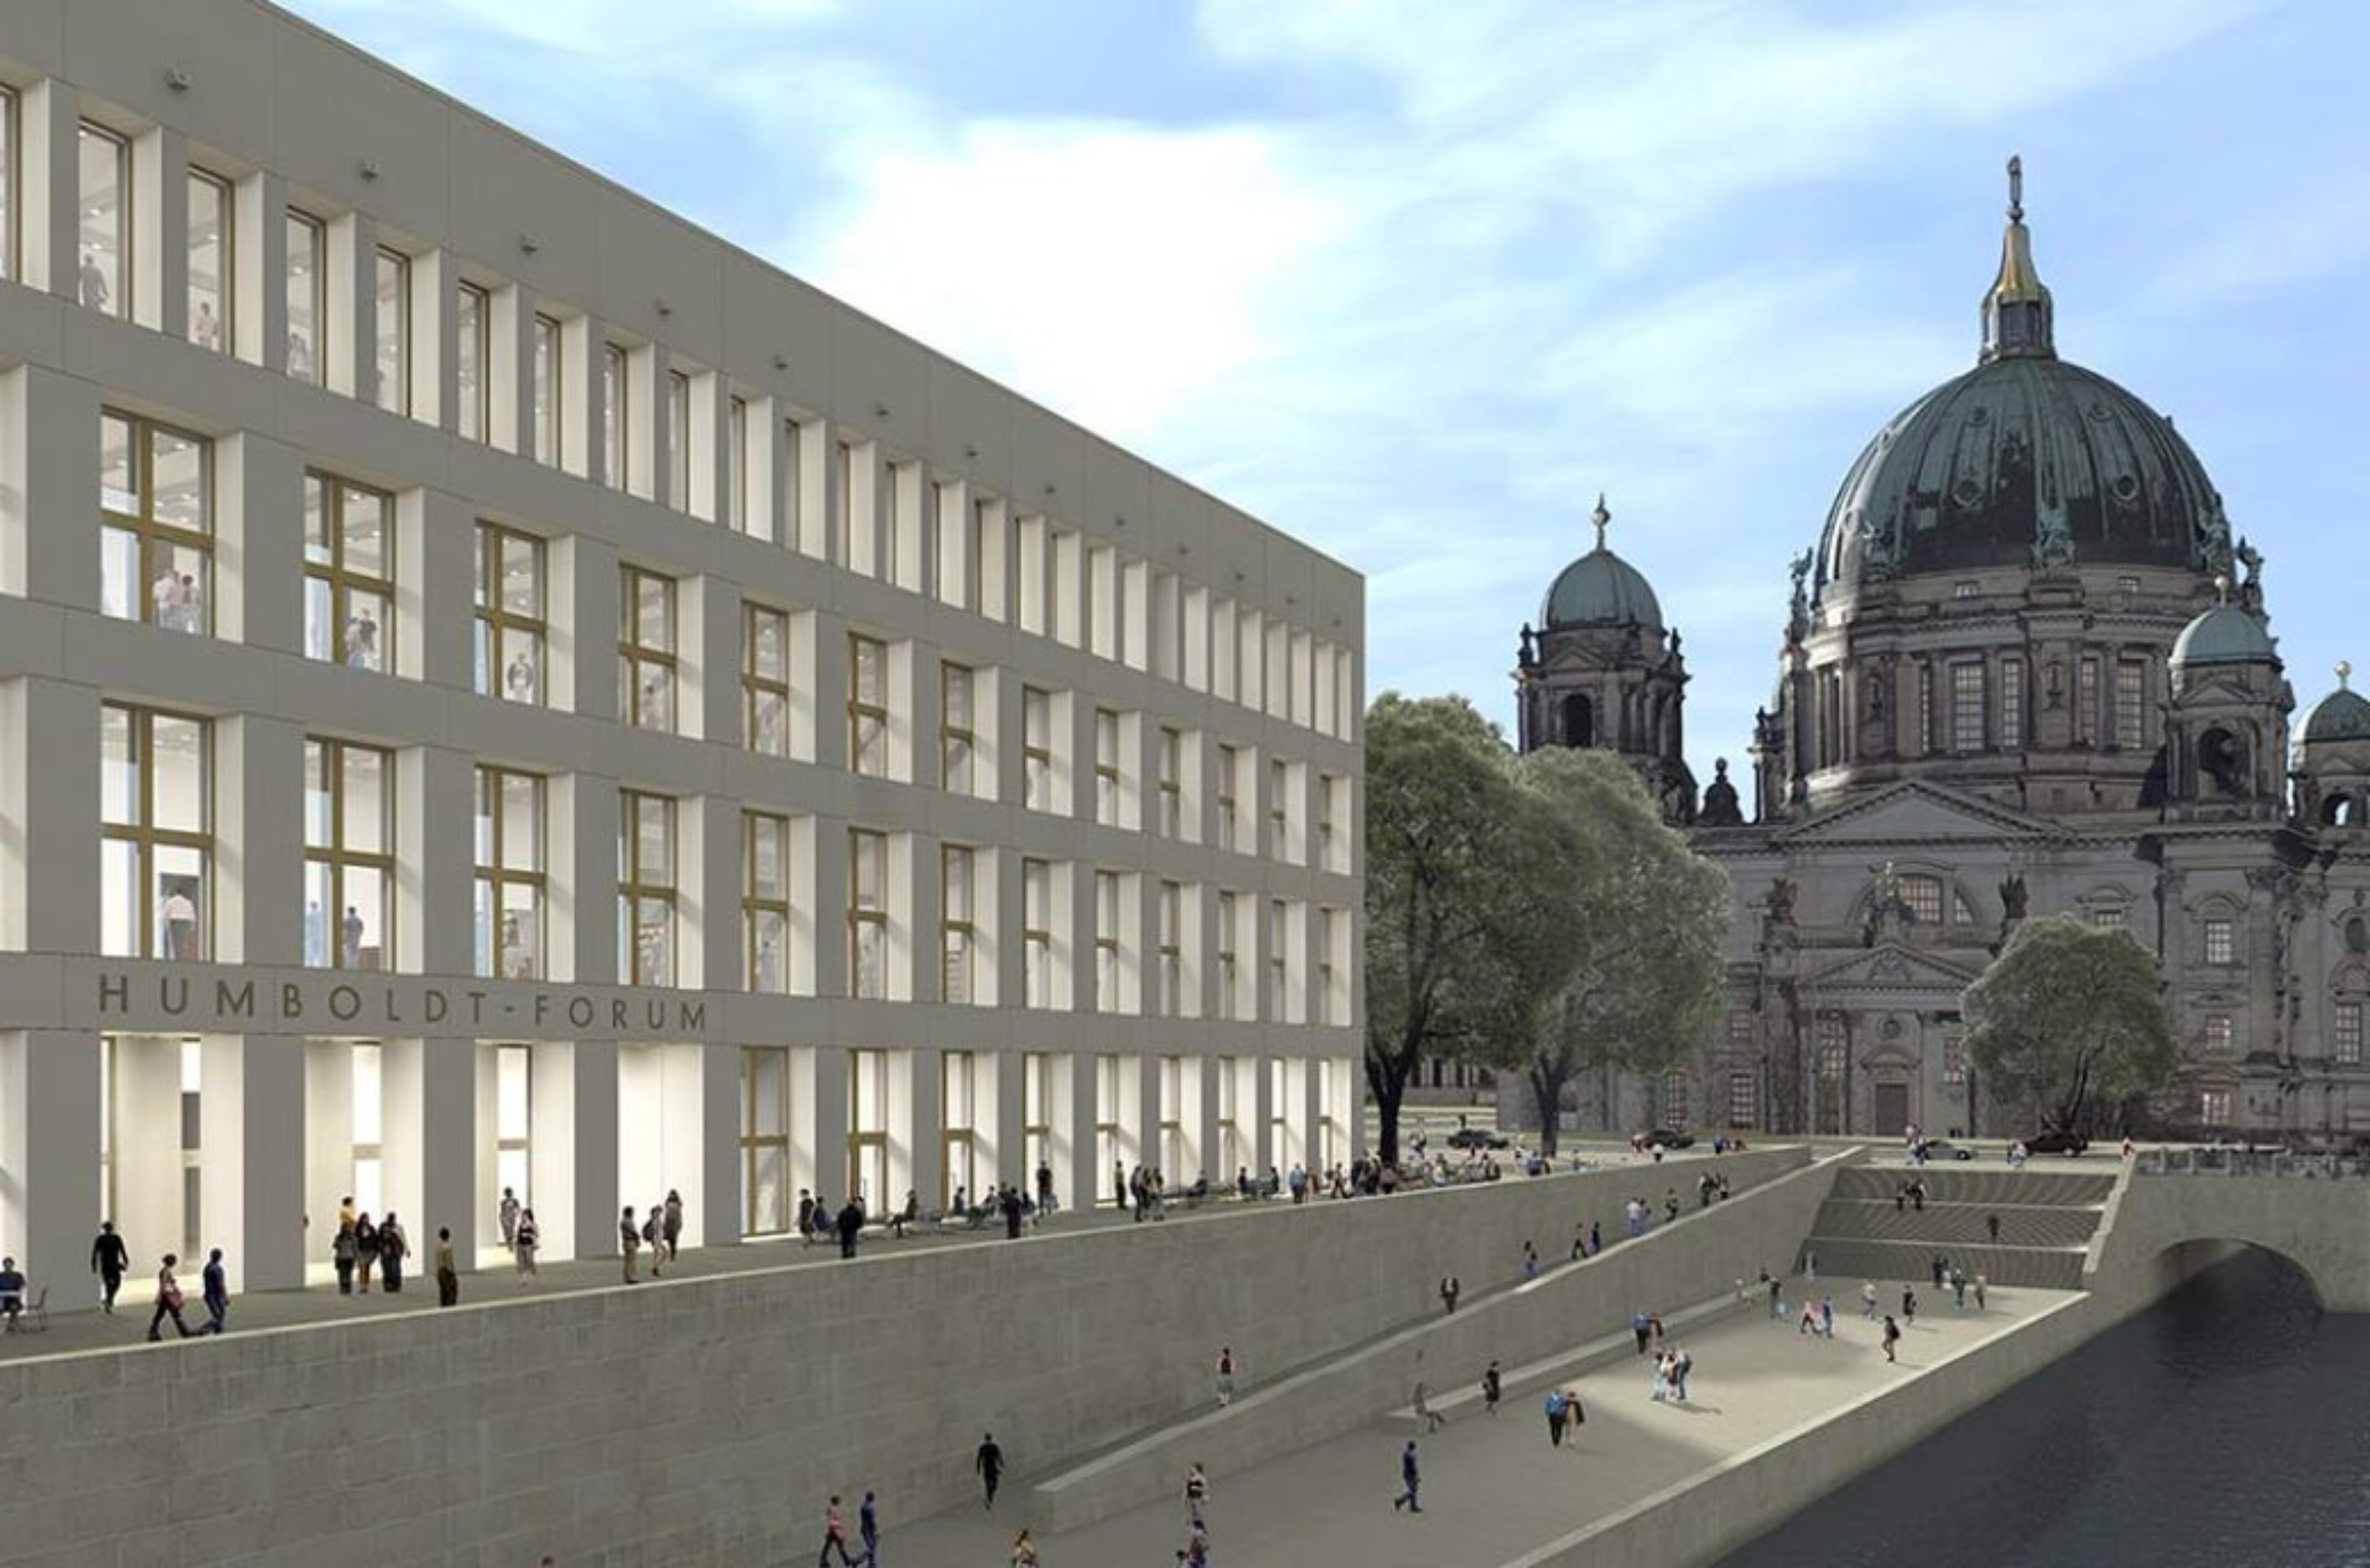 East front with view of the Berlin Cathedral (3D visualization)